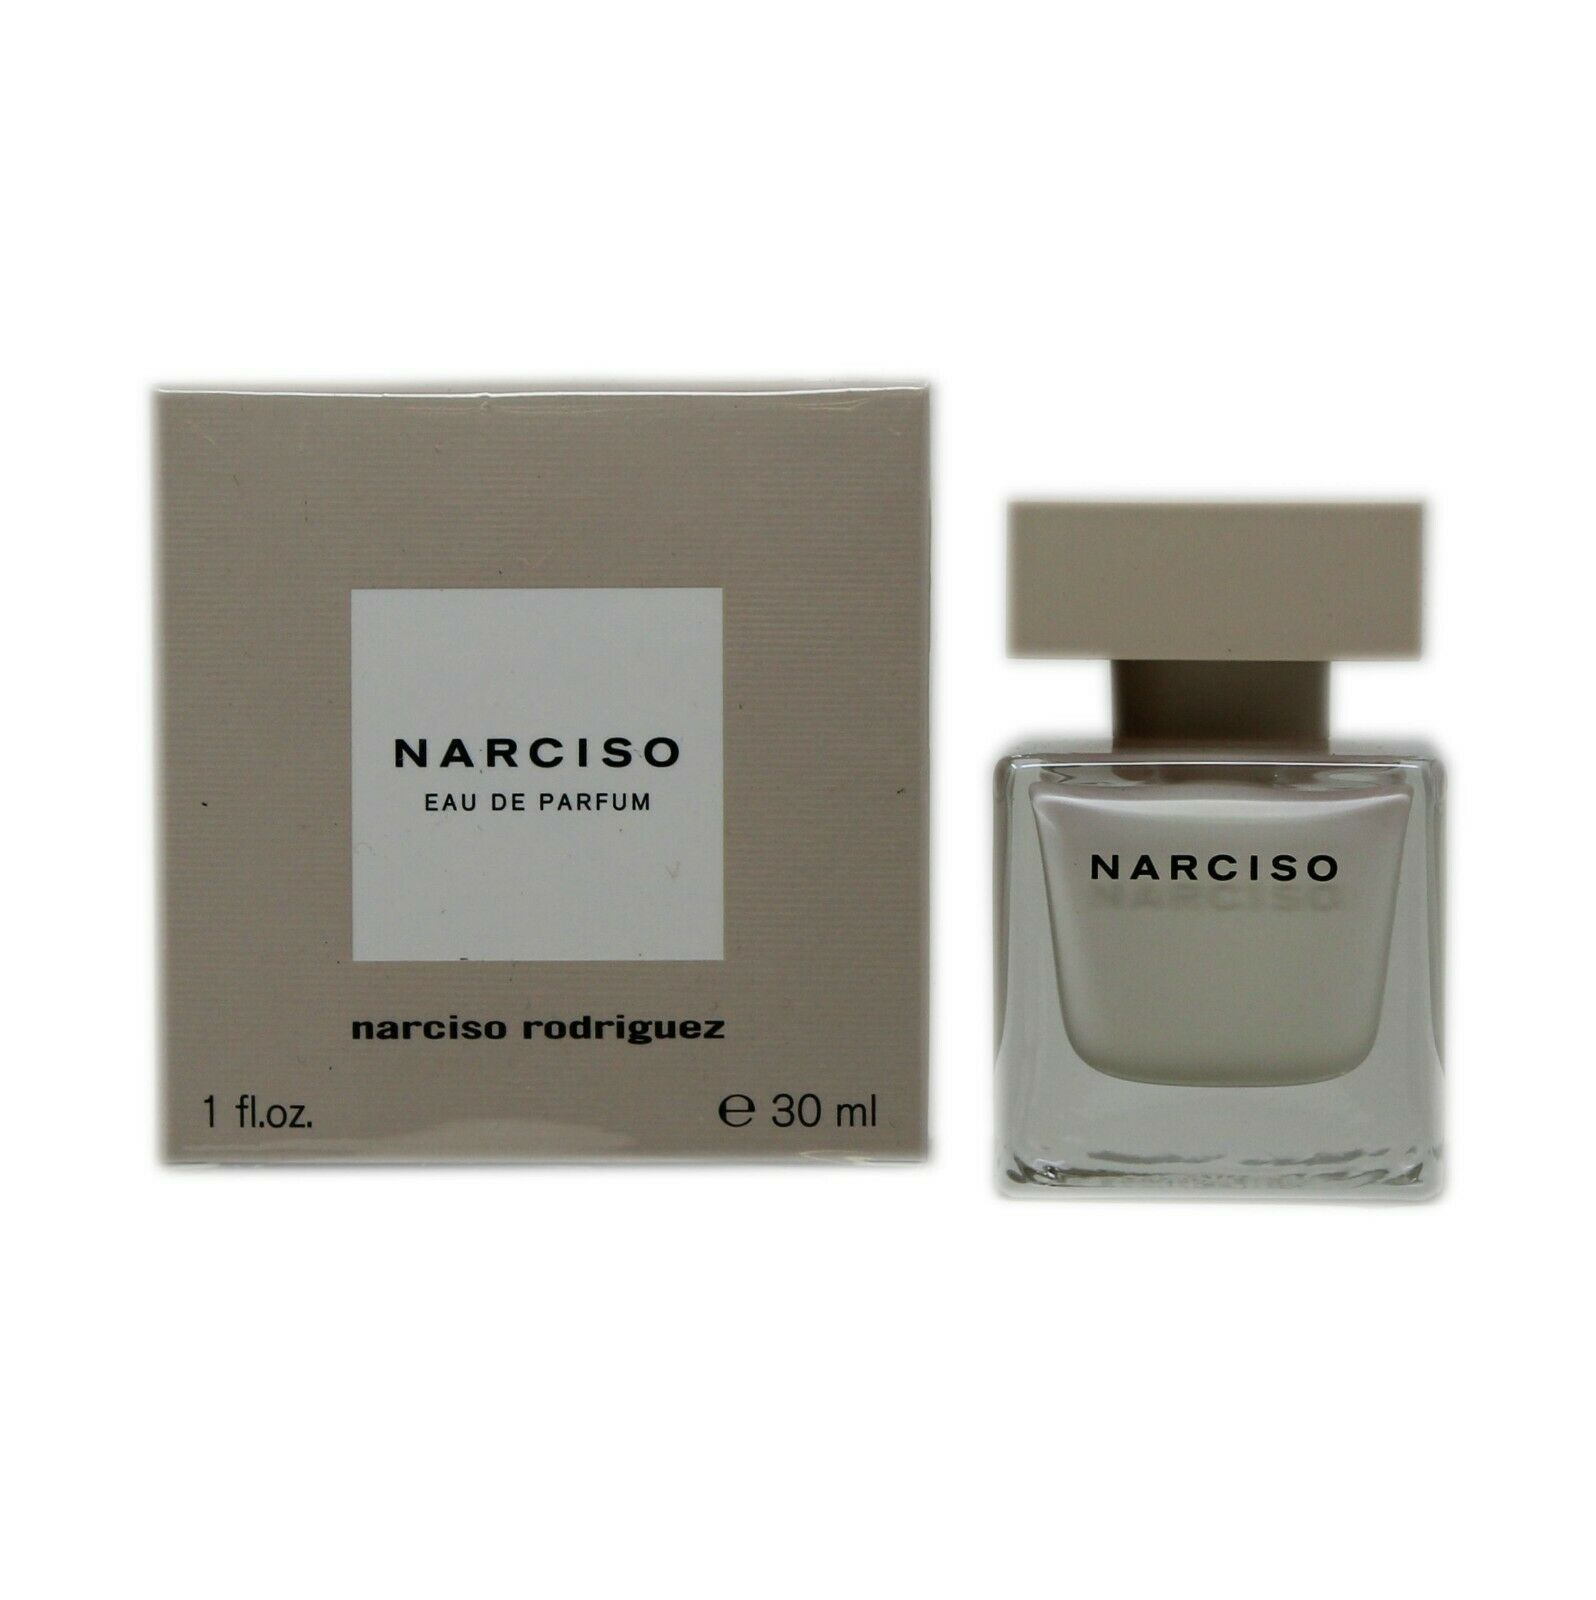 Primary image for NARCISO RODRIGUEZ NARCISO EAU DE PARFUM SPRAY 30 ML/1 FL.OZ. NIB